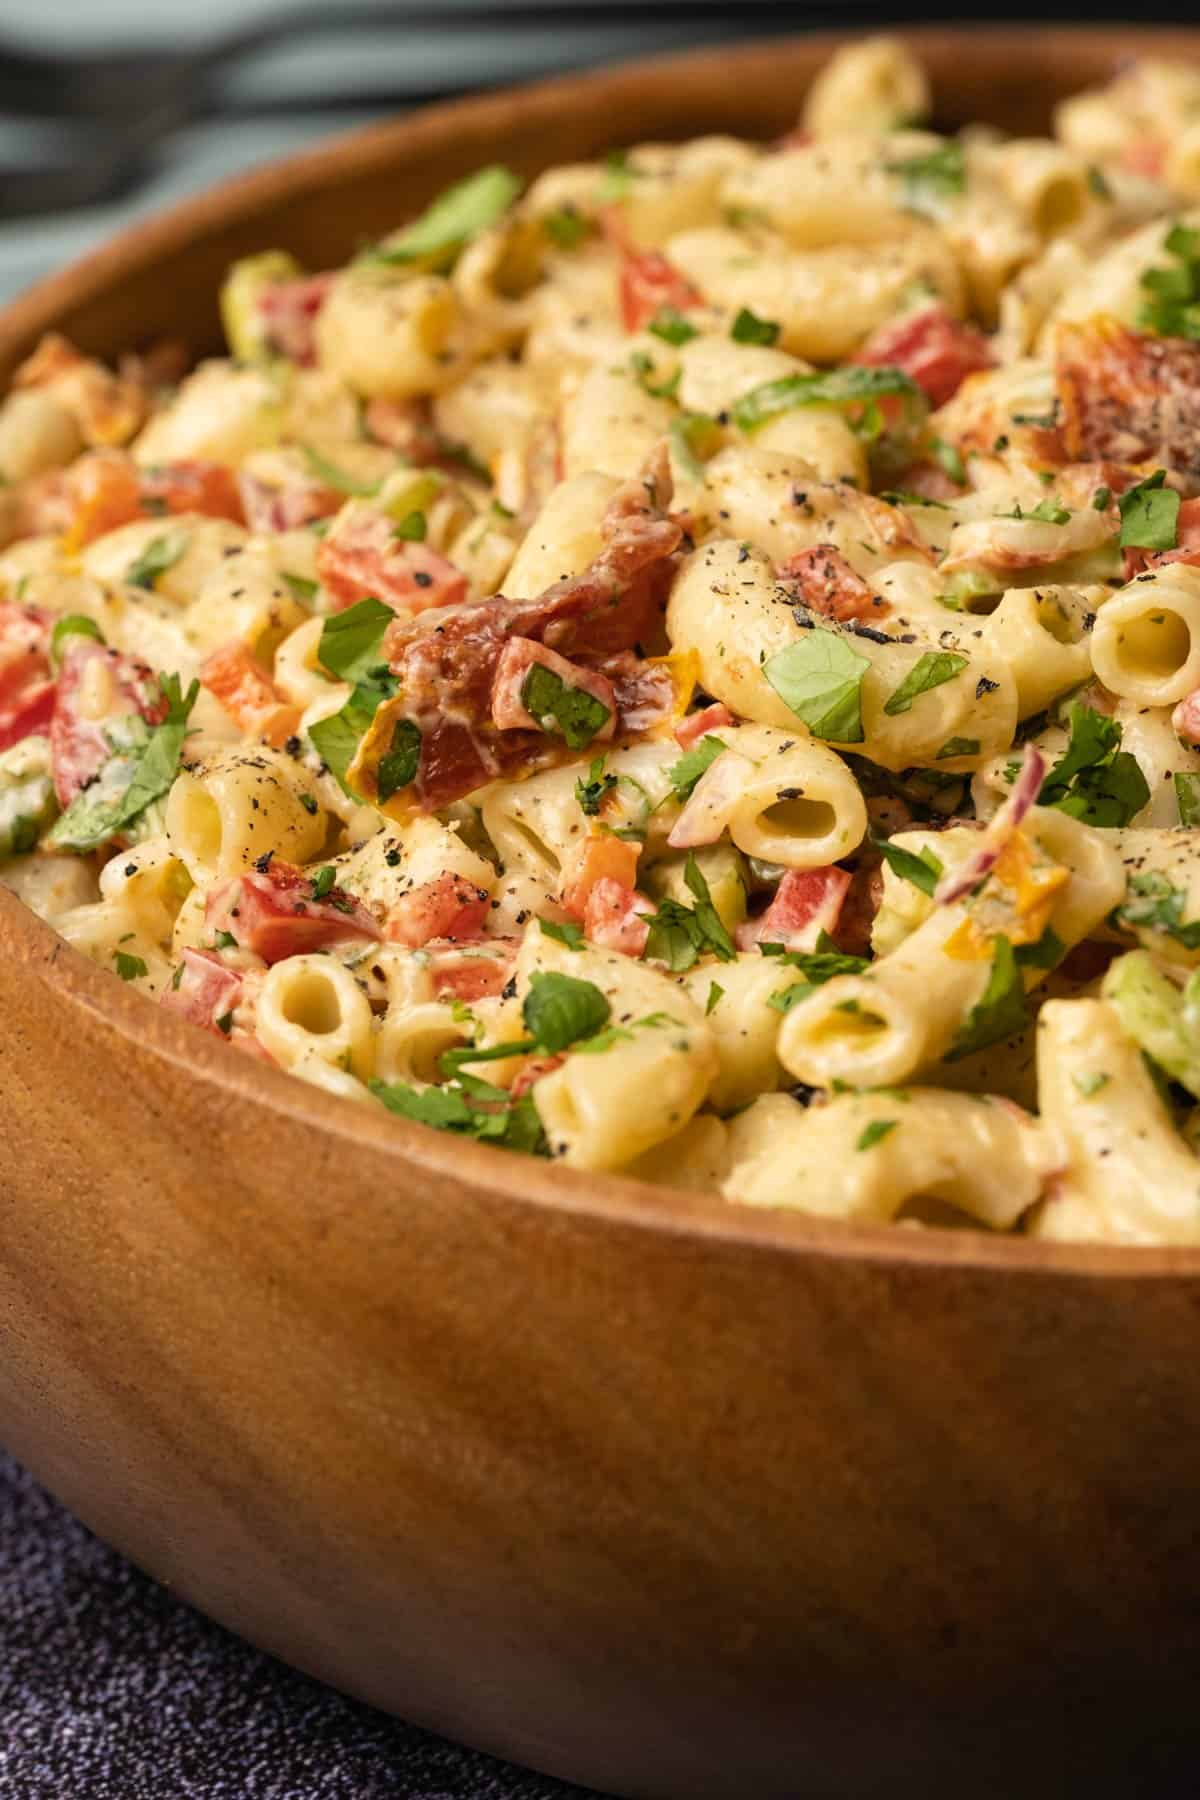 Macaroni salad in a wooden salad bowl.